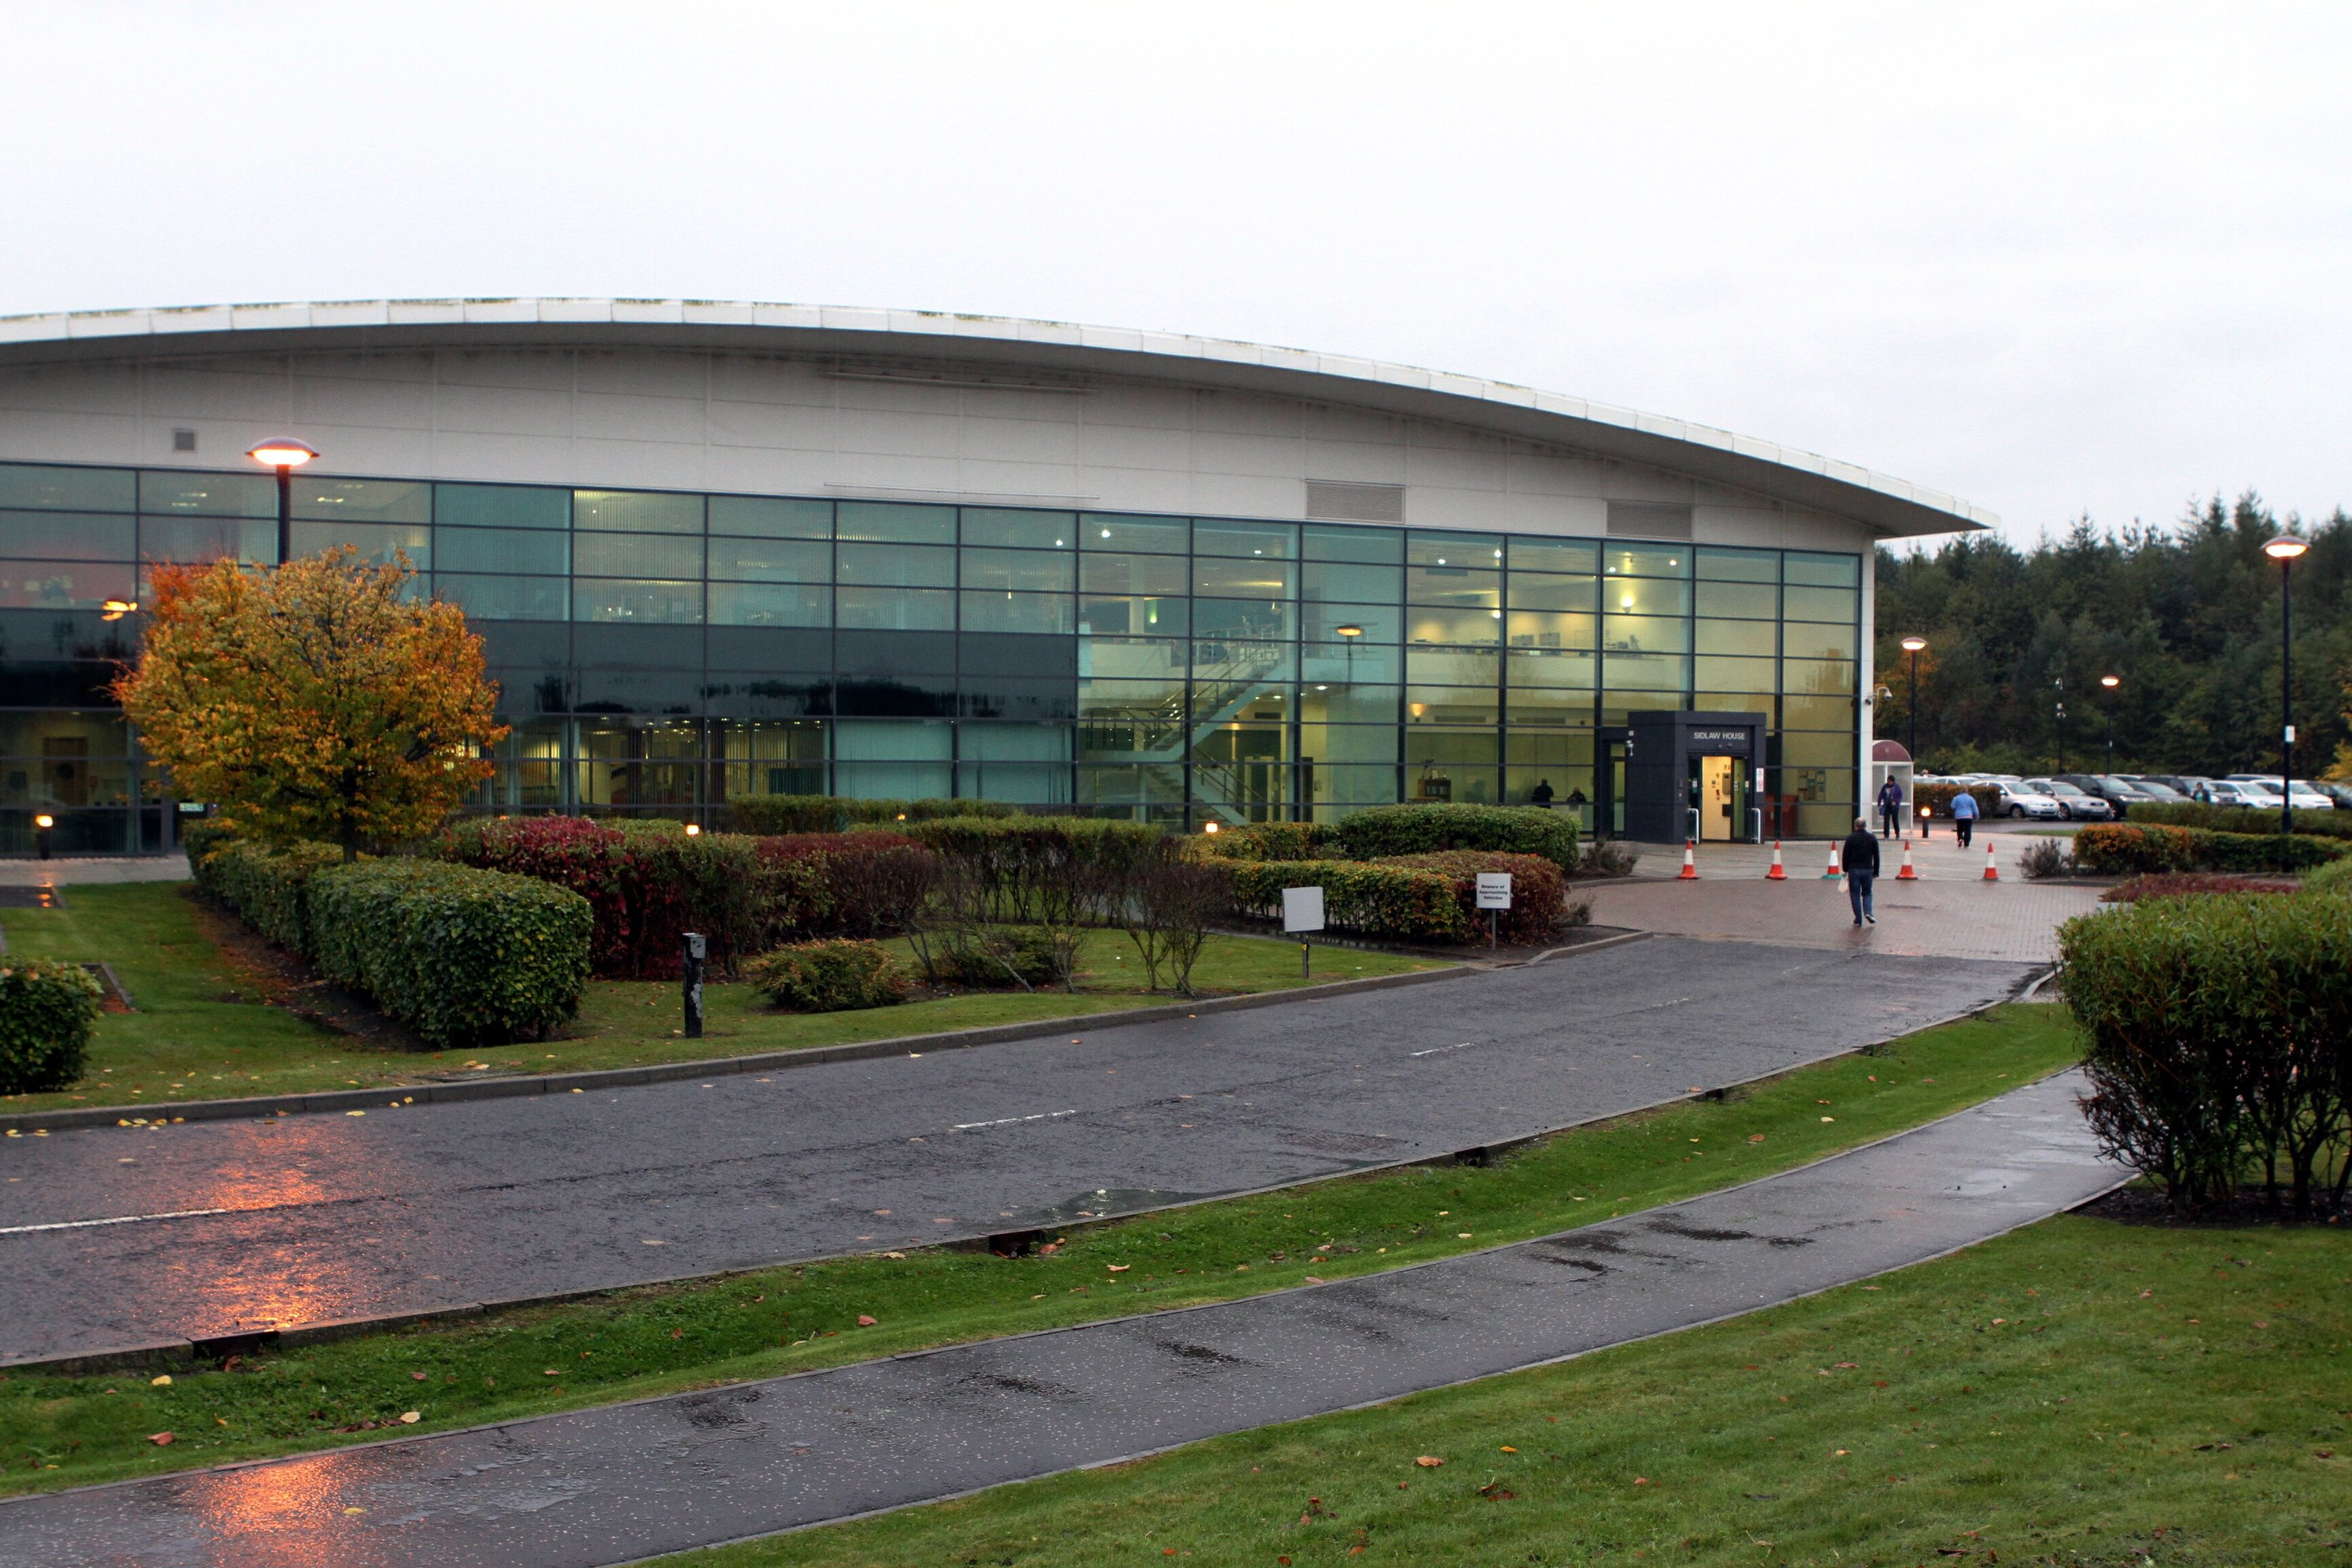 HMRC's Sidlaw House, at Dundee's Technology Park